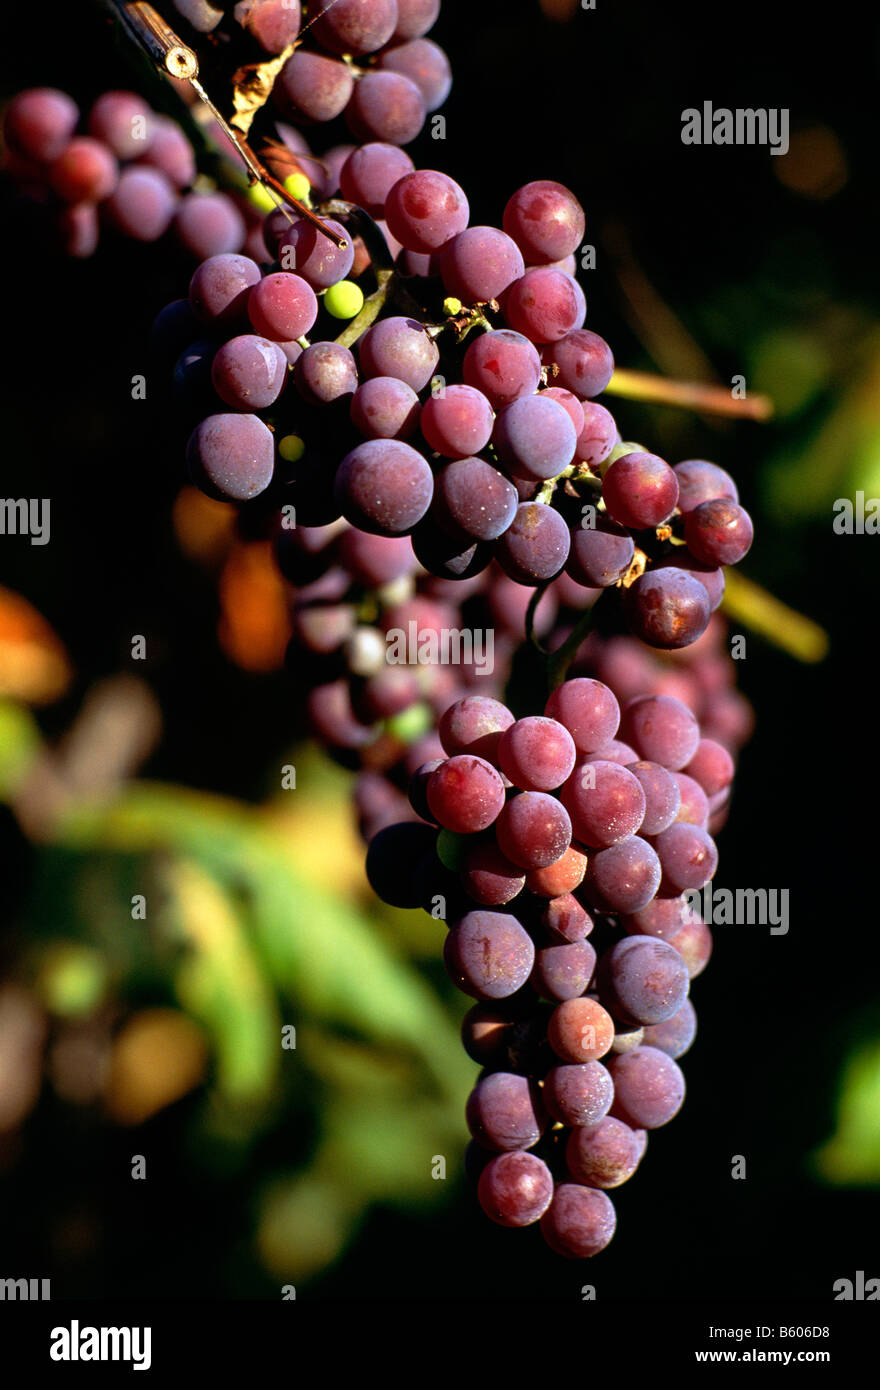 CONCORD GRAPE HARVEST, ARCHER VINEYARDS, TOWN OF NORTH EAST, ERIE COUNTY, PENNSYLVANIA, USA - Stock Image